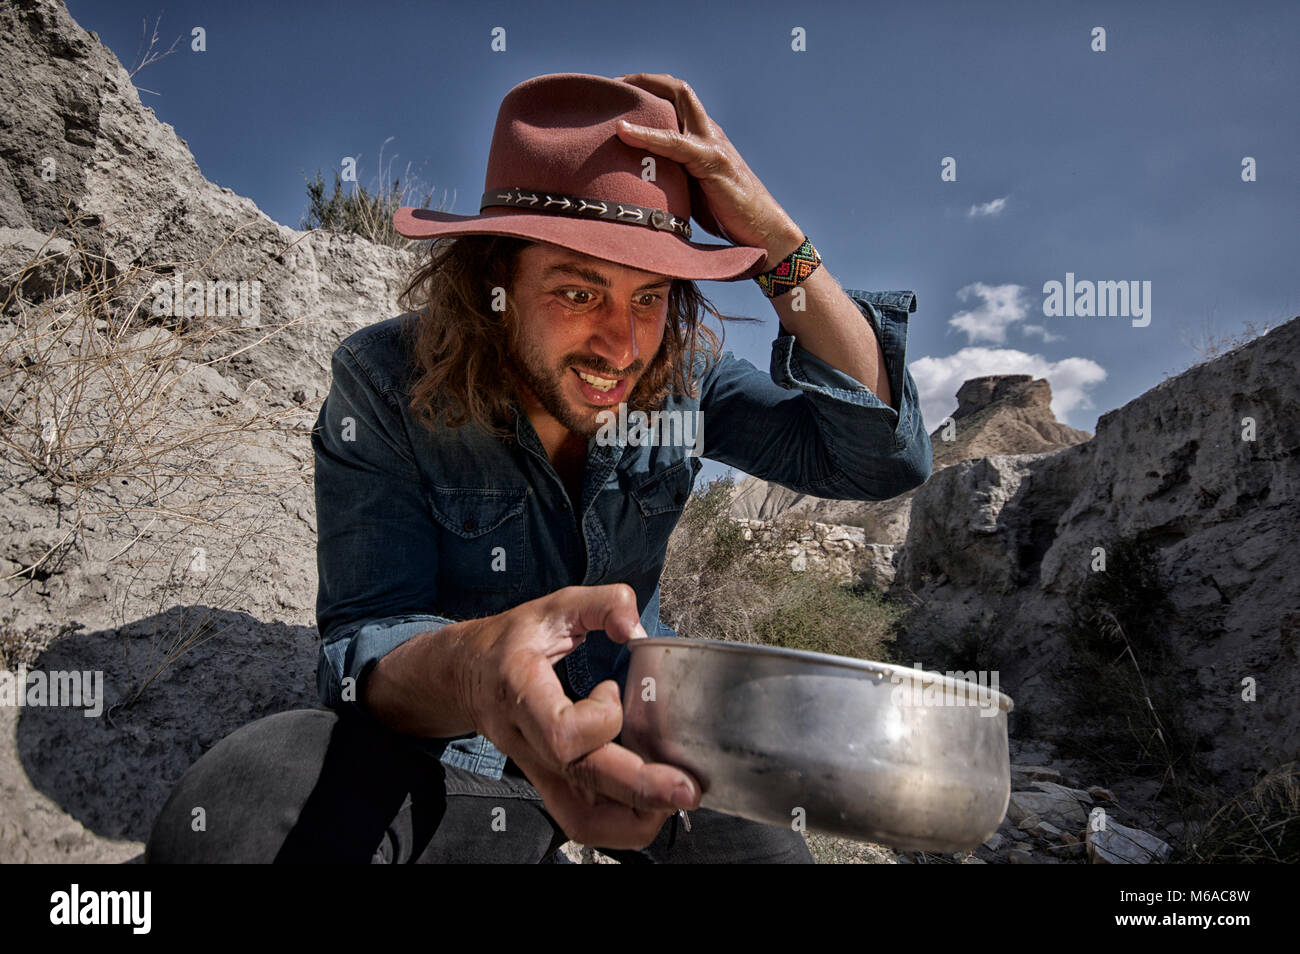 Finding Gold Stock Photos & Finding Gold Stock Images - Alamy